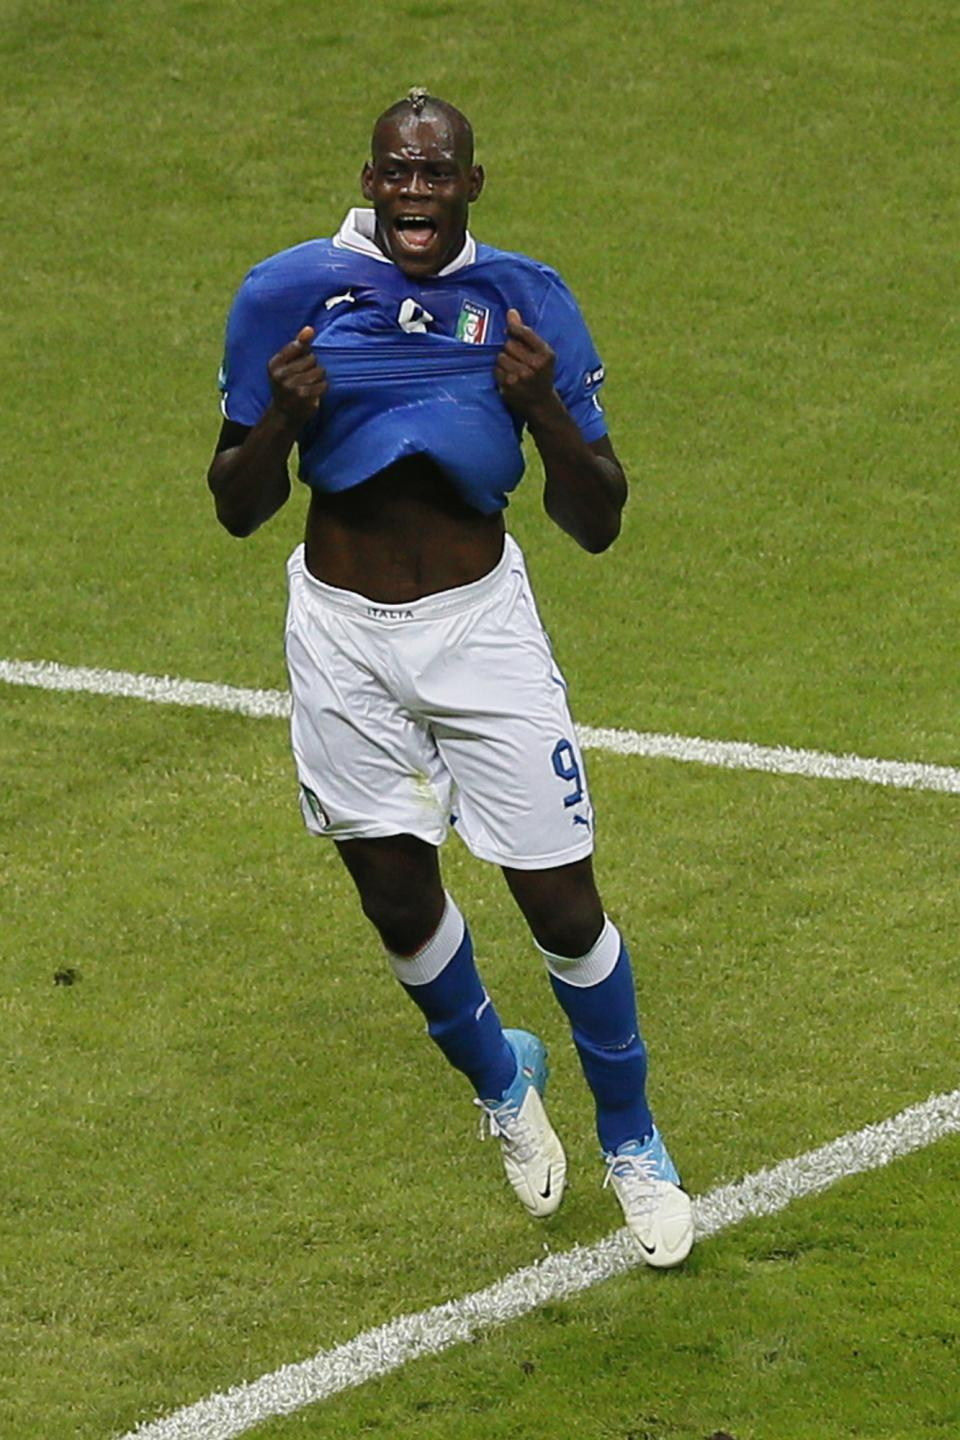 Italy's Mario Balotelli celebrates scoring the opening goal during the Euro 2012 soccer championship semifinal match between Germany and Italy in Warsaw, Poland, Thursday, June 28, 2012. (AP Photo/Vadim Ghirda)